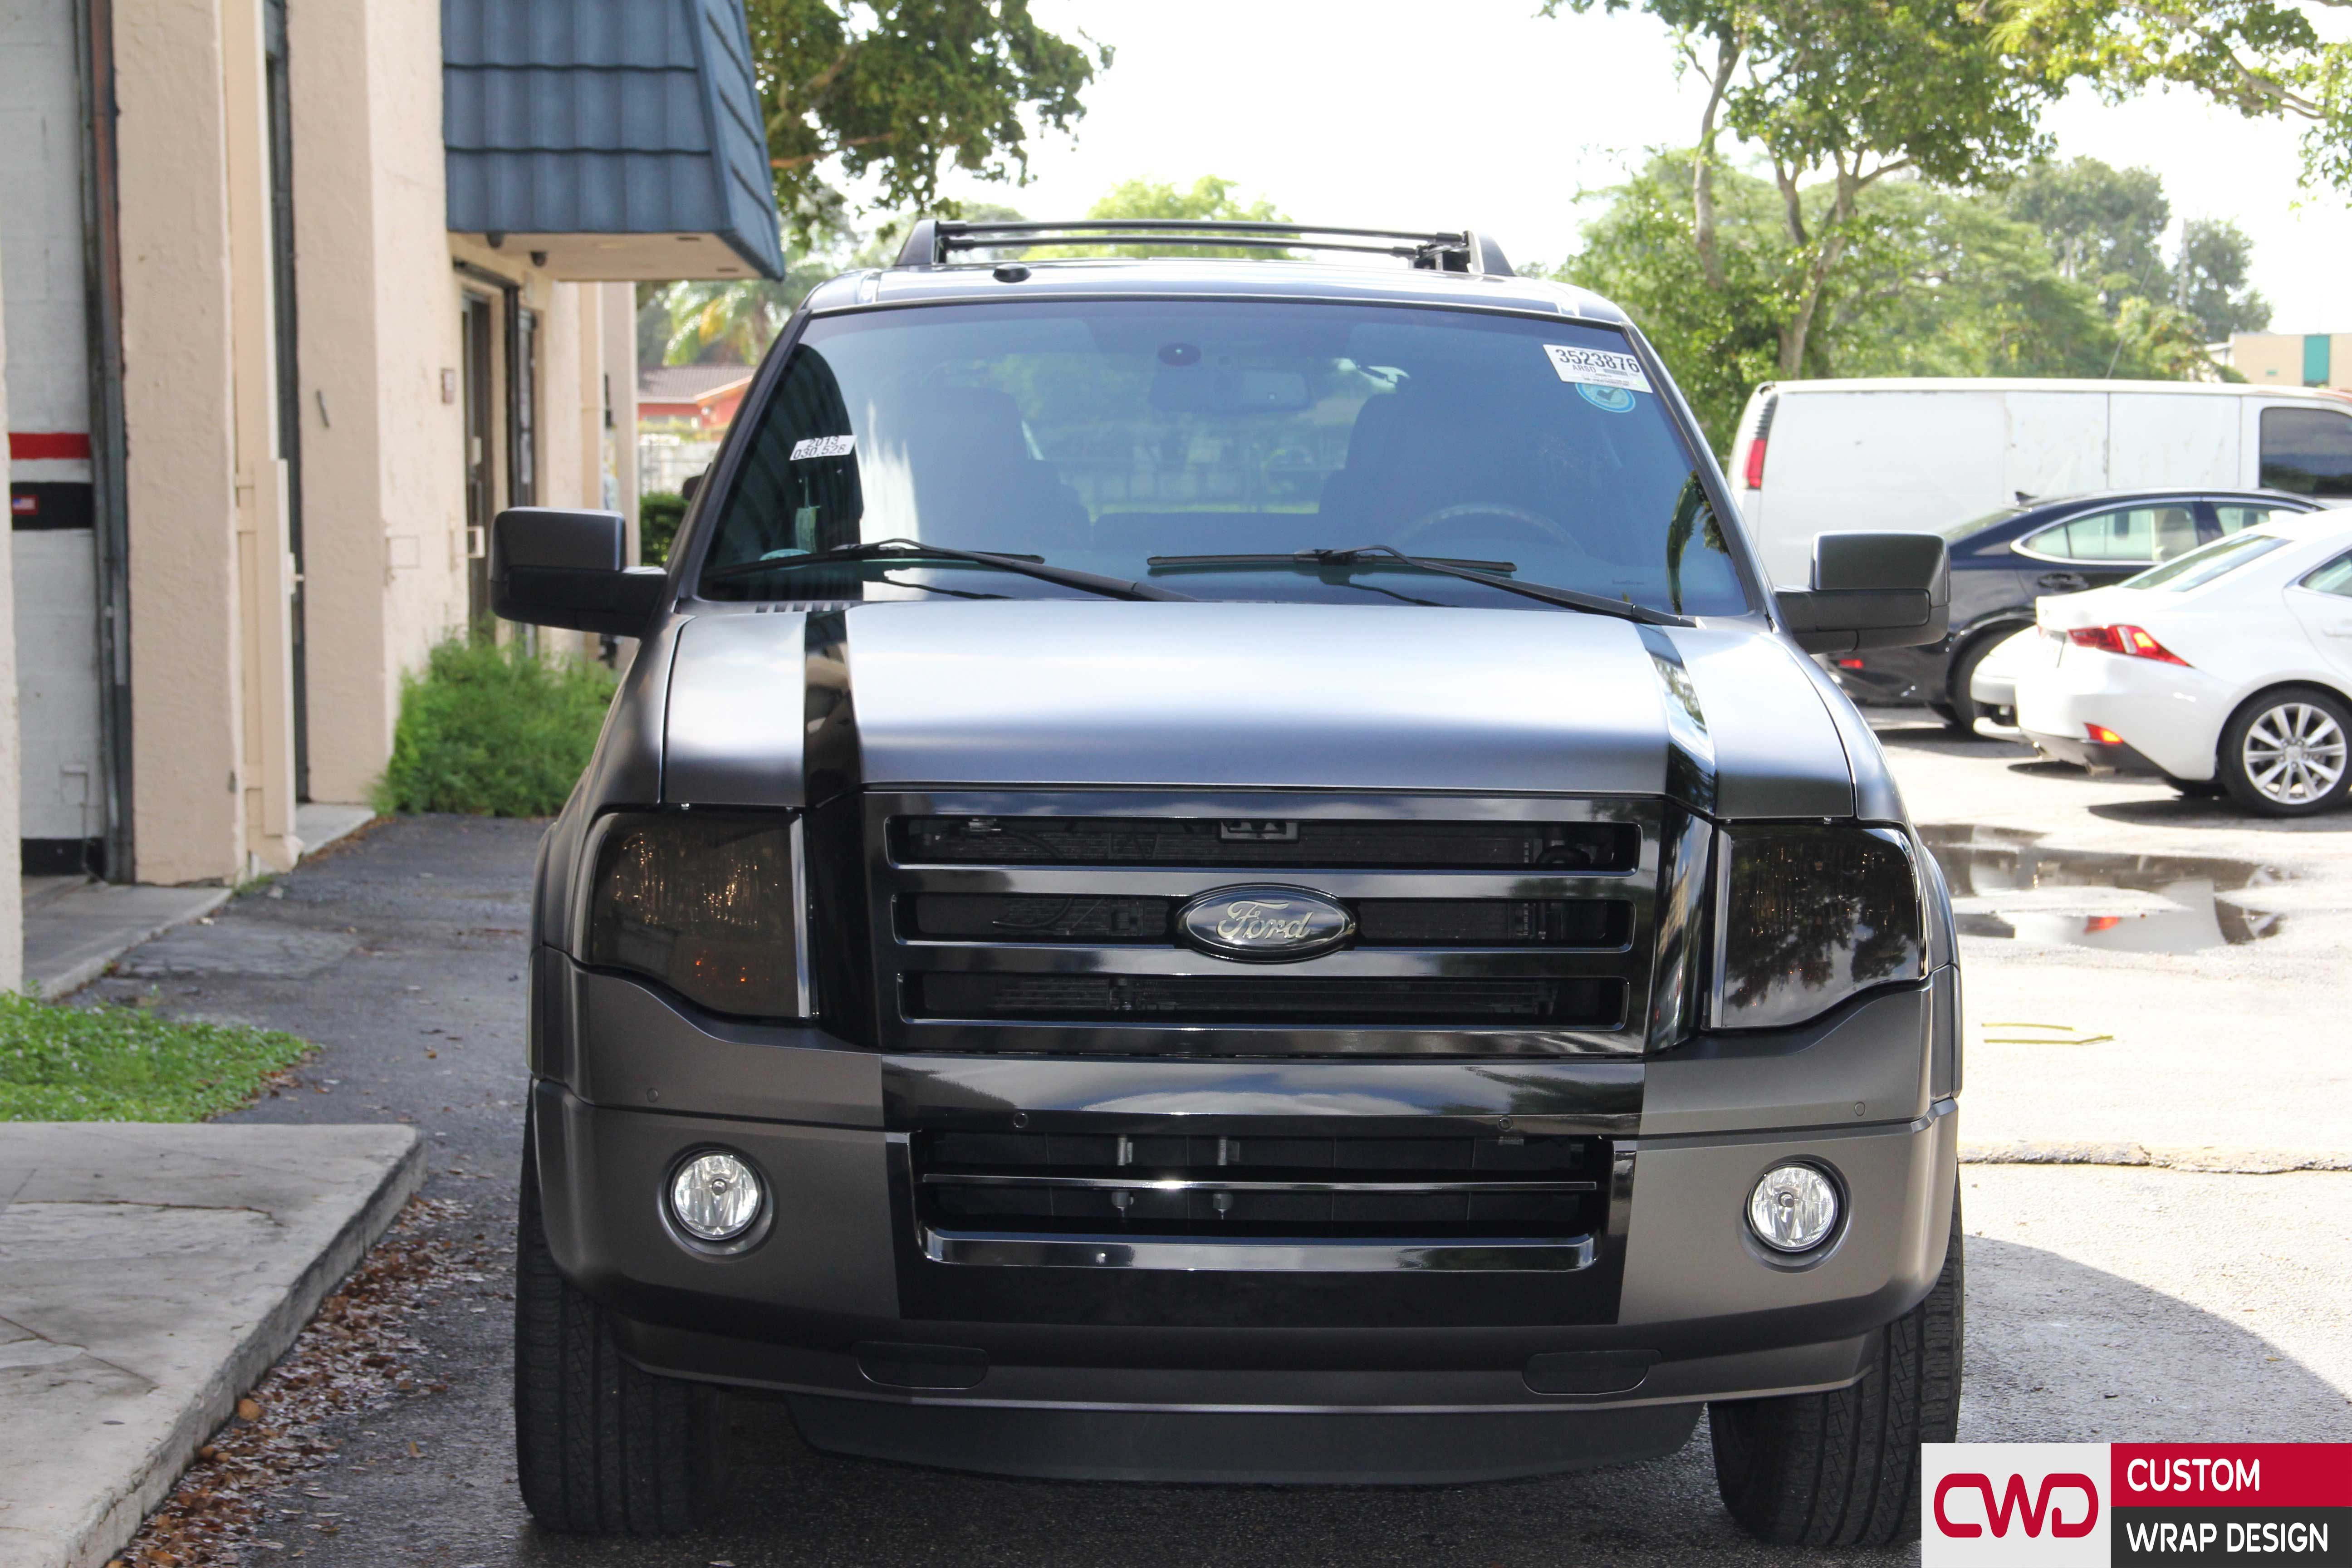 Ford Expedition Full Wrap In Satin Grey 3m Film Book Appointment